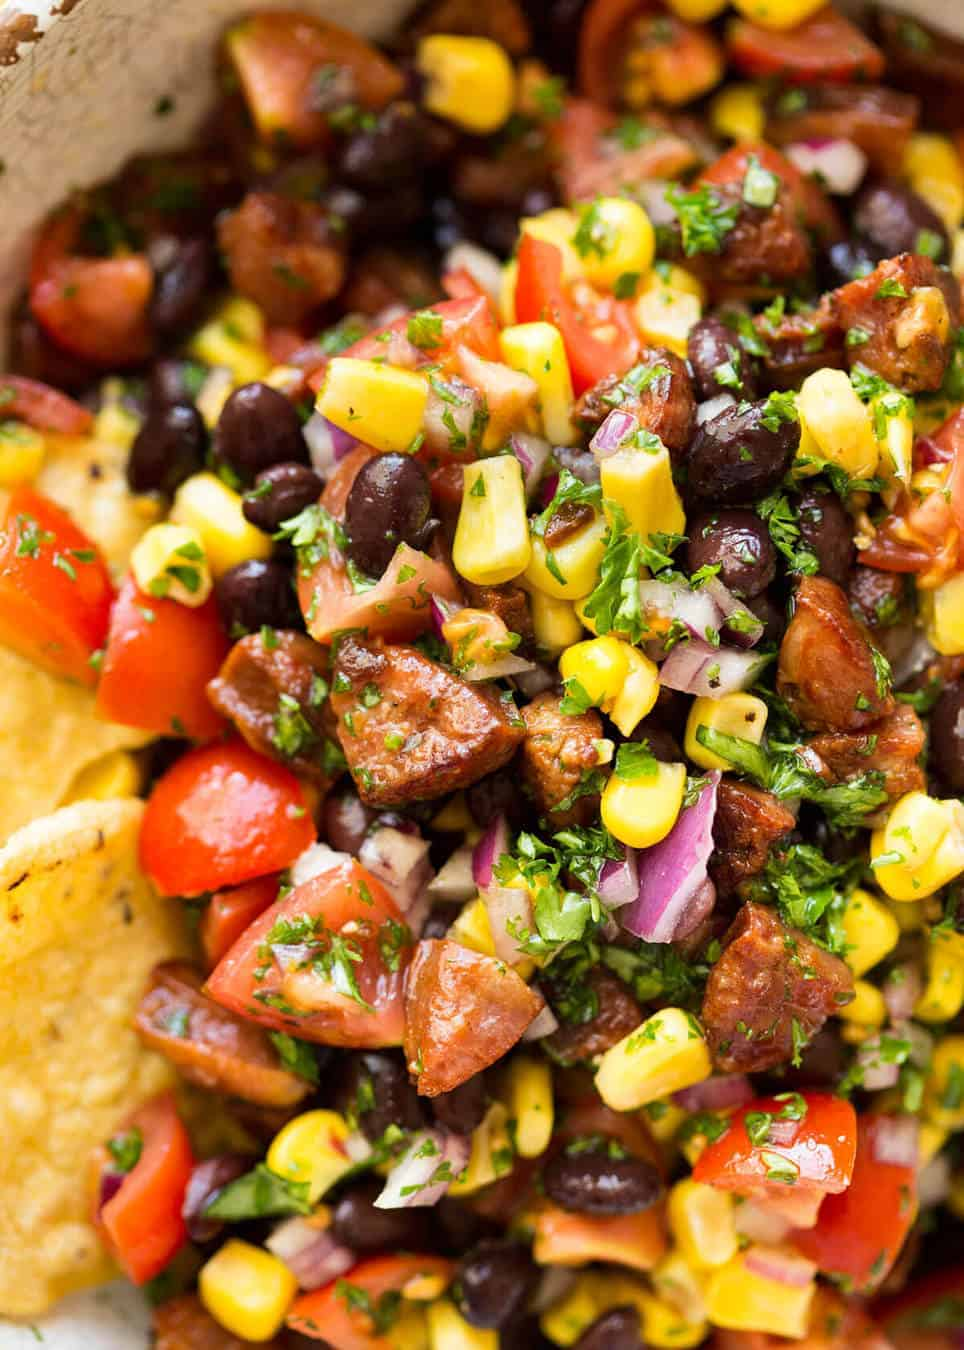 I call this a PIG OUT Salsa. Sensible people would call it an Chorizo, Black Bean and Corn Salsa. :) www.recipetineats.com